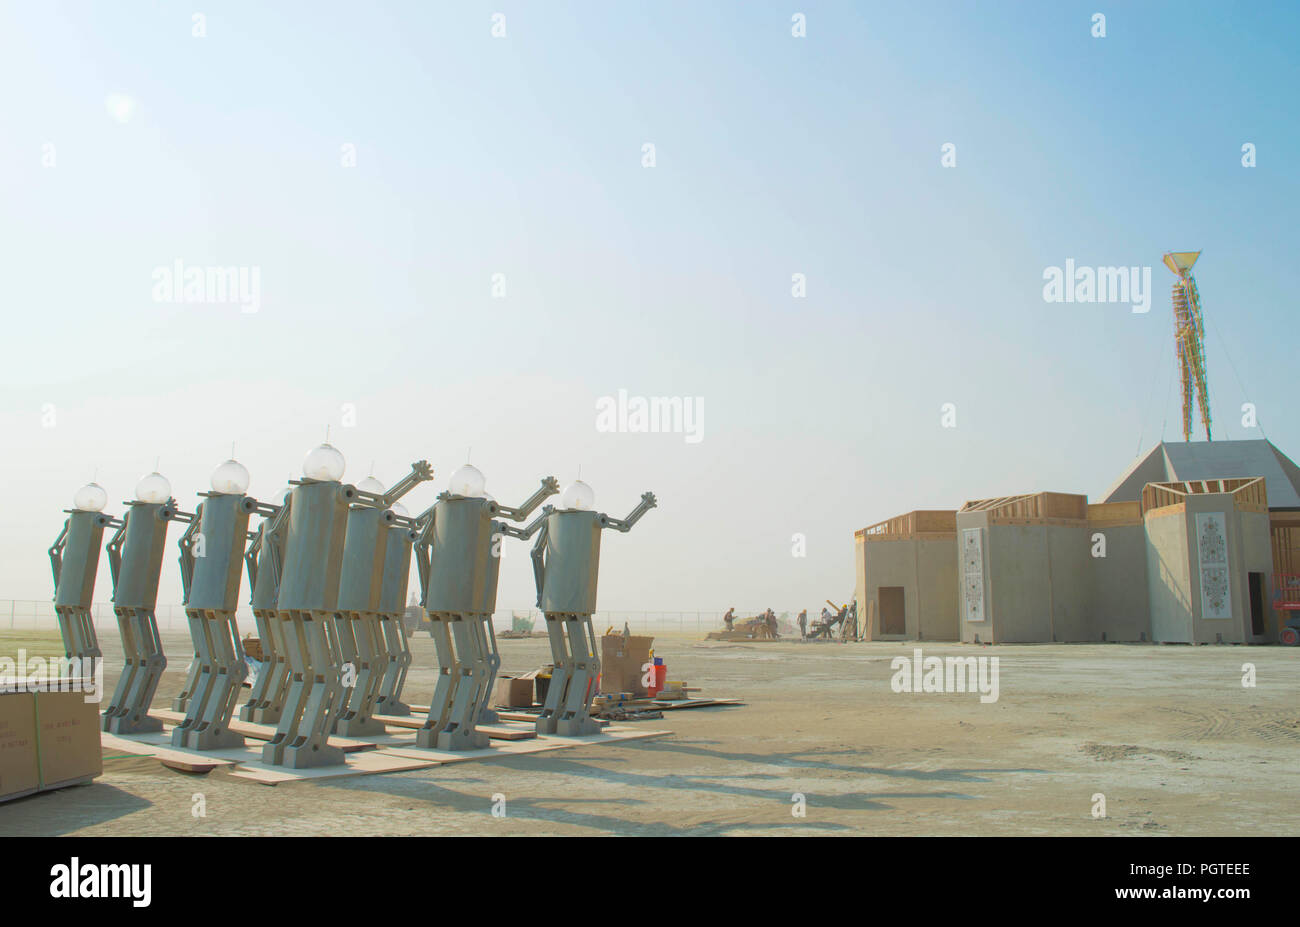 A Robot Sculpture Art Installation At The Annual Burning Man Counter Culture Festival In The Desert August 24 2018 Near Black Rock Nevada Each Year 80 000 Of People Set Up A Temporary